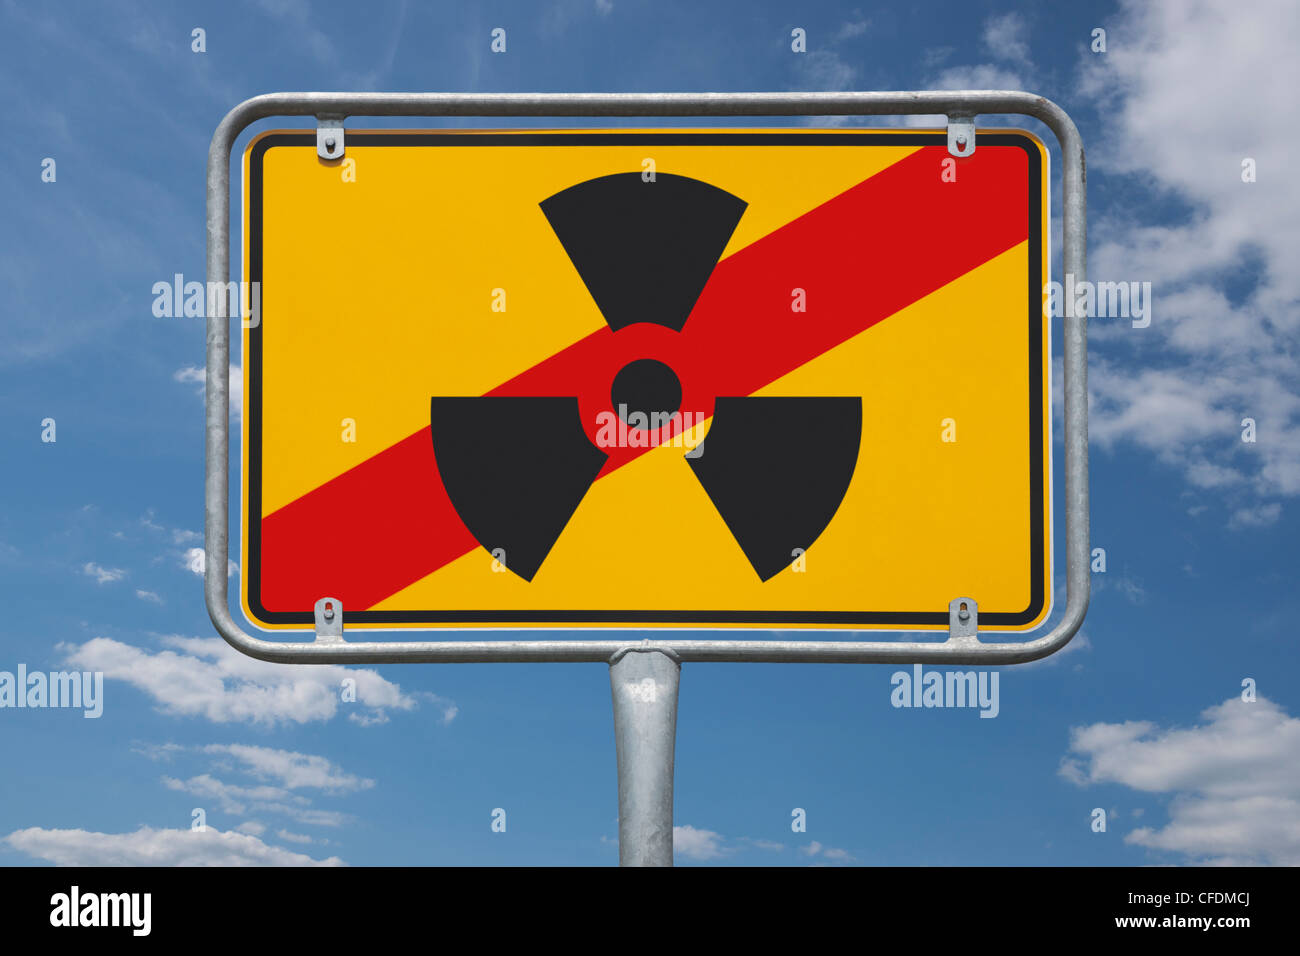 View of a end of the town sign with the symbol for radioactivity, background sky. - Stock Image